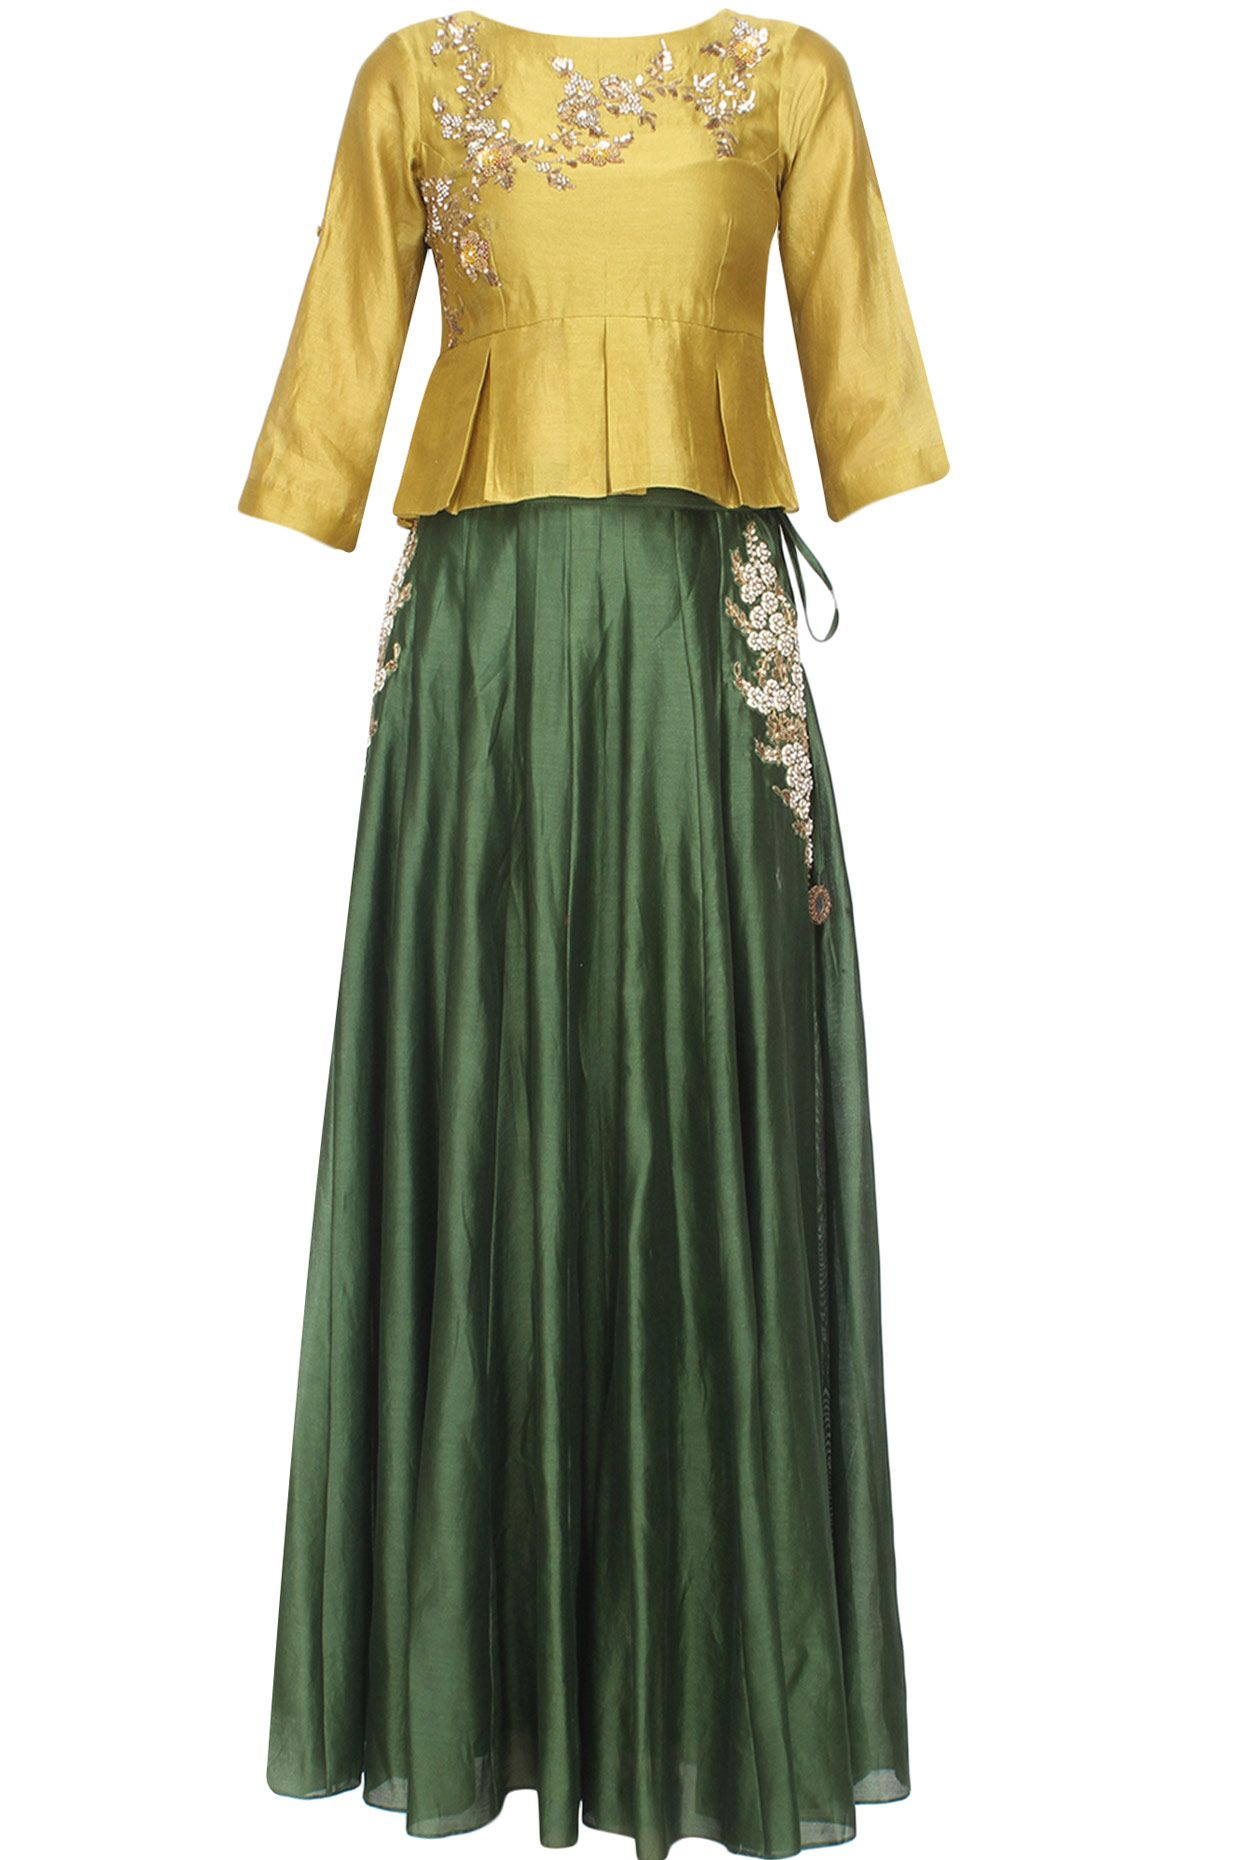 0fc5dfe4541e0 Mustard floral embroidered peplum top and green skirt set available only at  Pernia s Pop Up Shop.